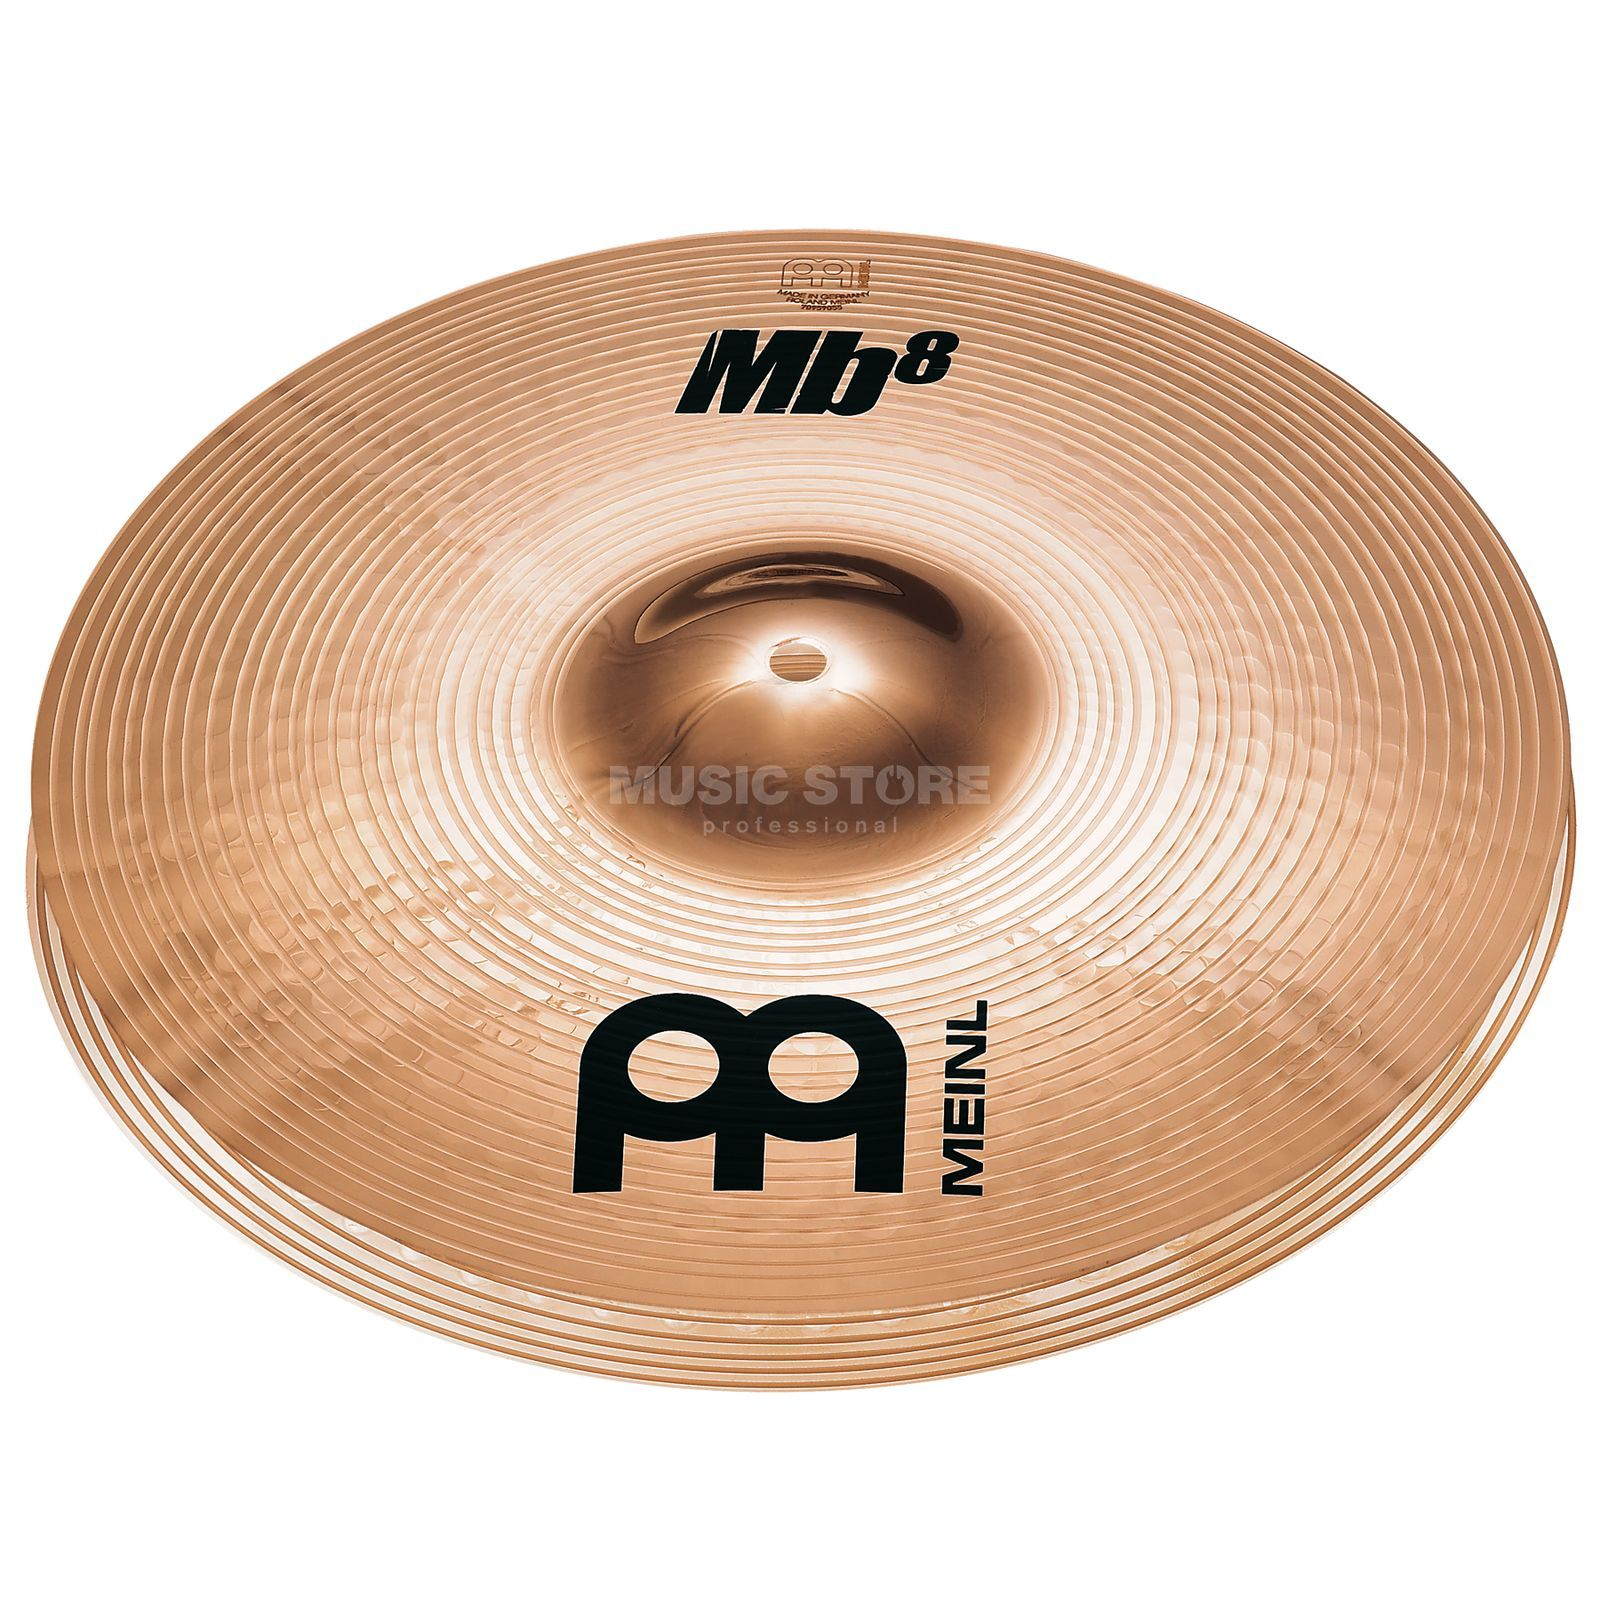 "Meinl MB8 Medium HiHat 13"", MB8-13MH-B, B-Stock Product Image"